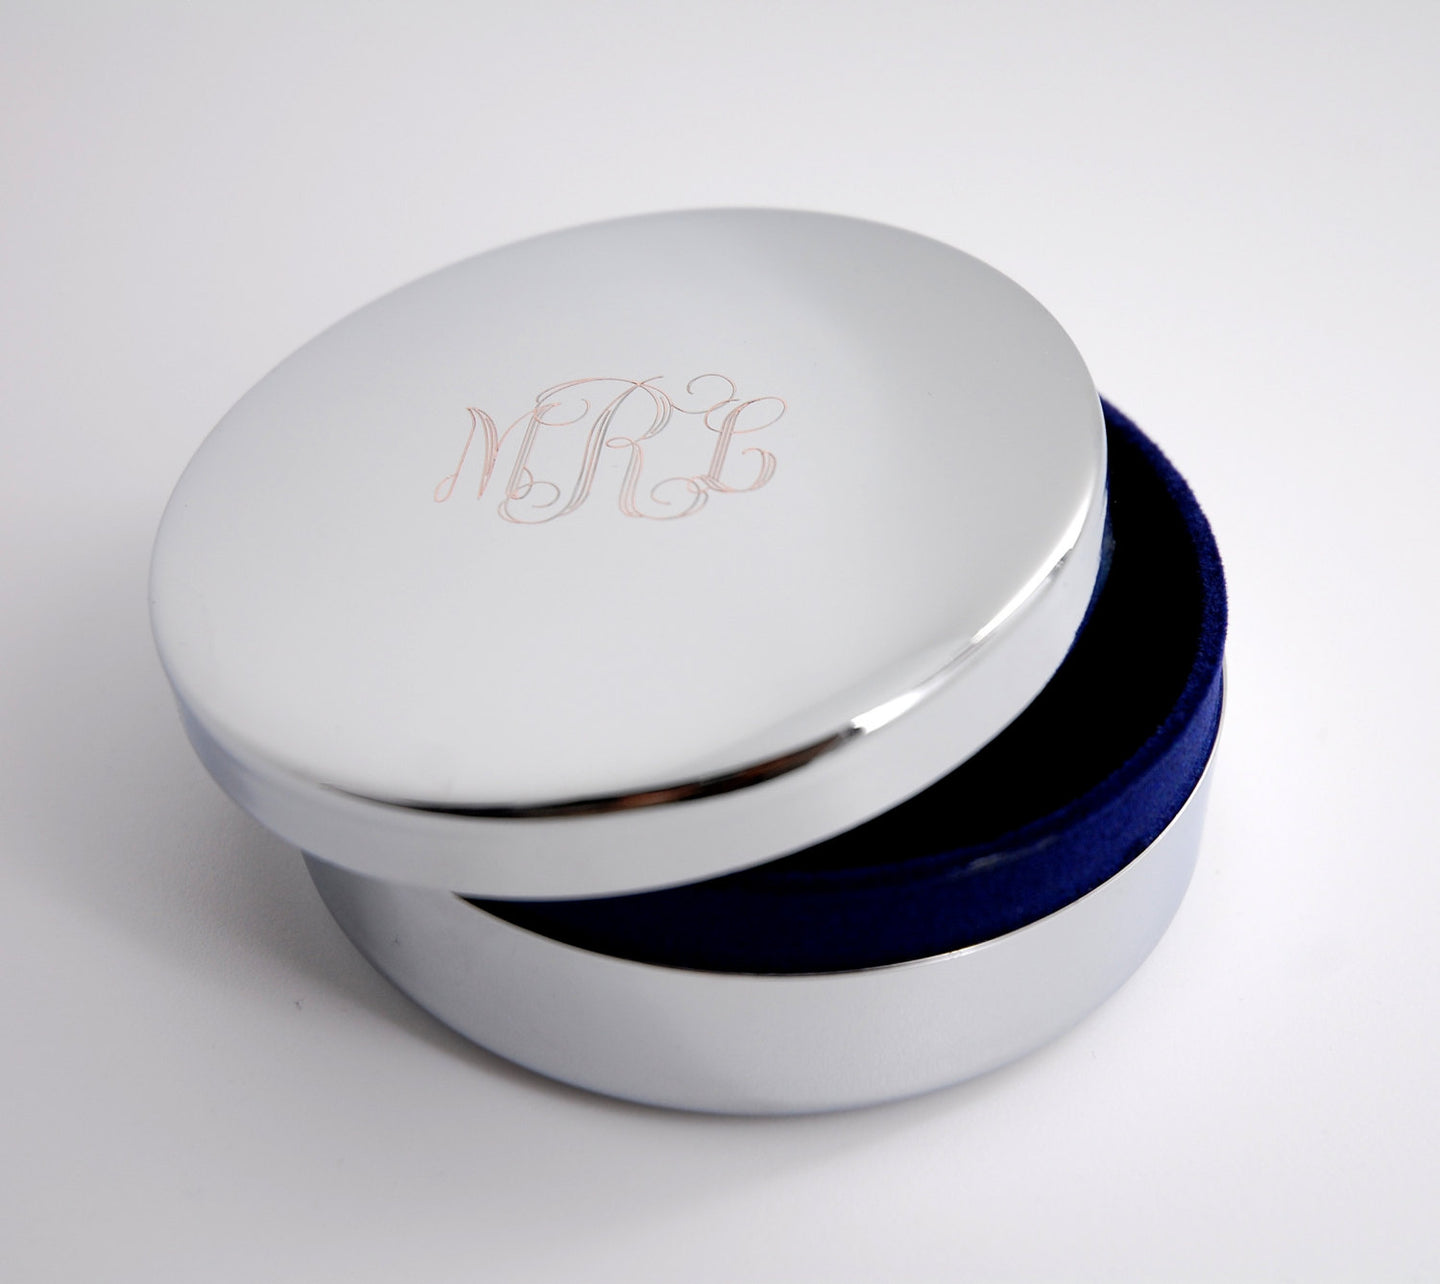 Personalized round jewelry box for Bridesmaid, Engraved with Name or Monogram